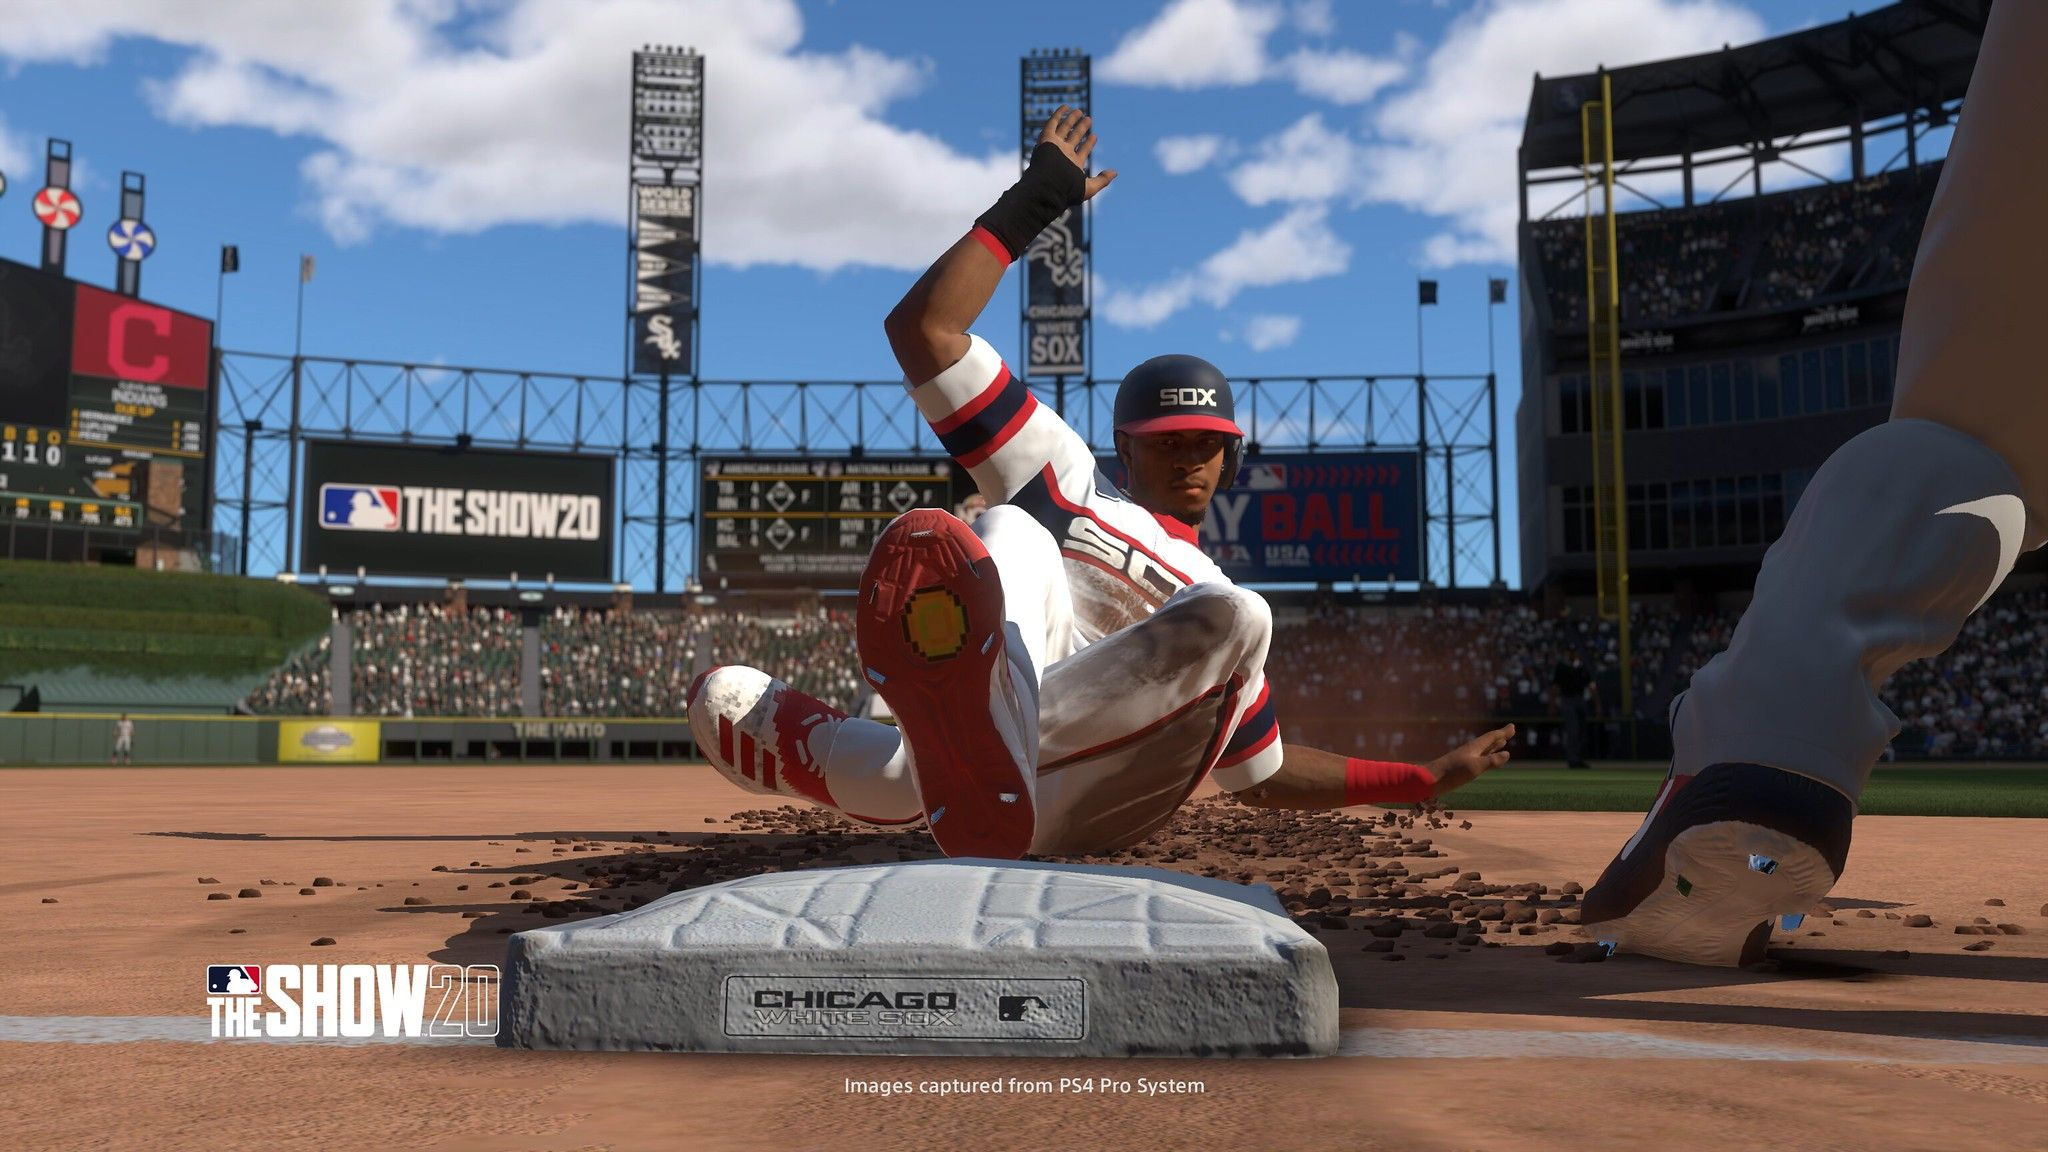 Reviewed Mlb The Show 20 If It Ain T Broke Video Gamingnews In 2020 Mlb The Show Baseball Videos Entertainment News